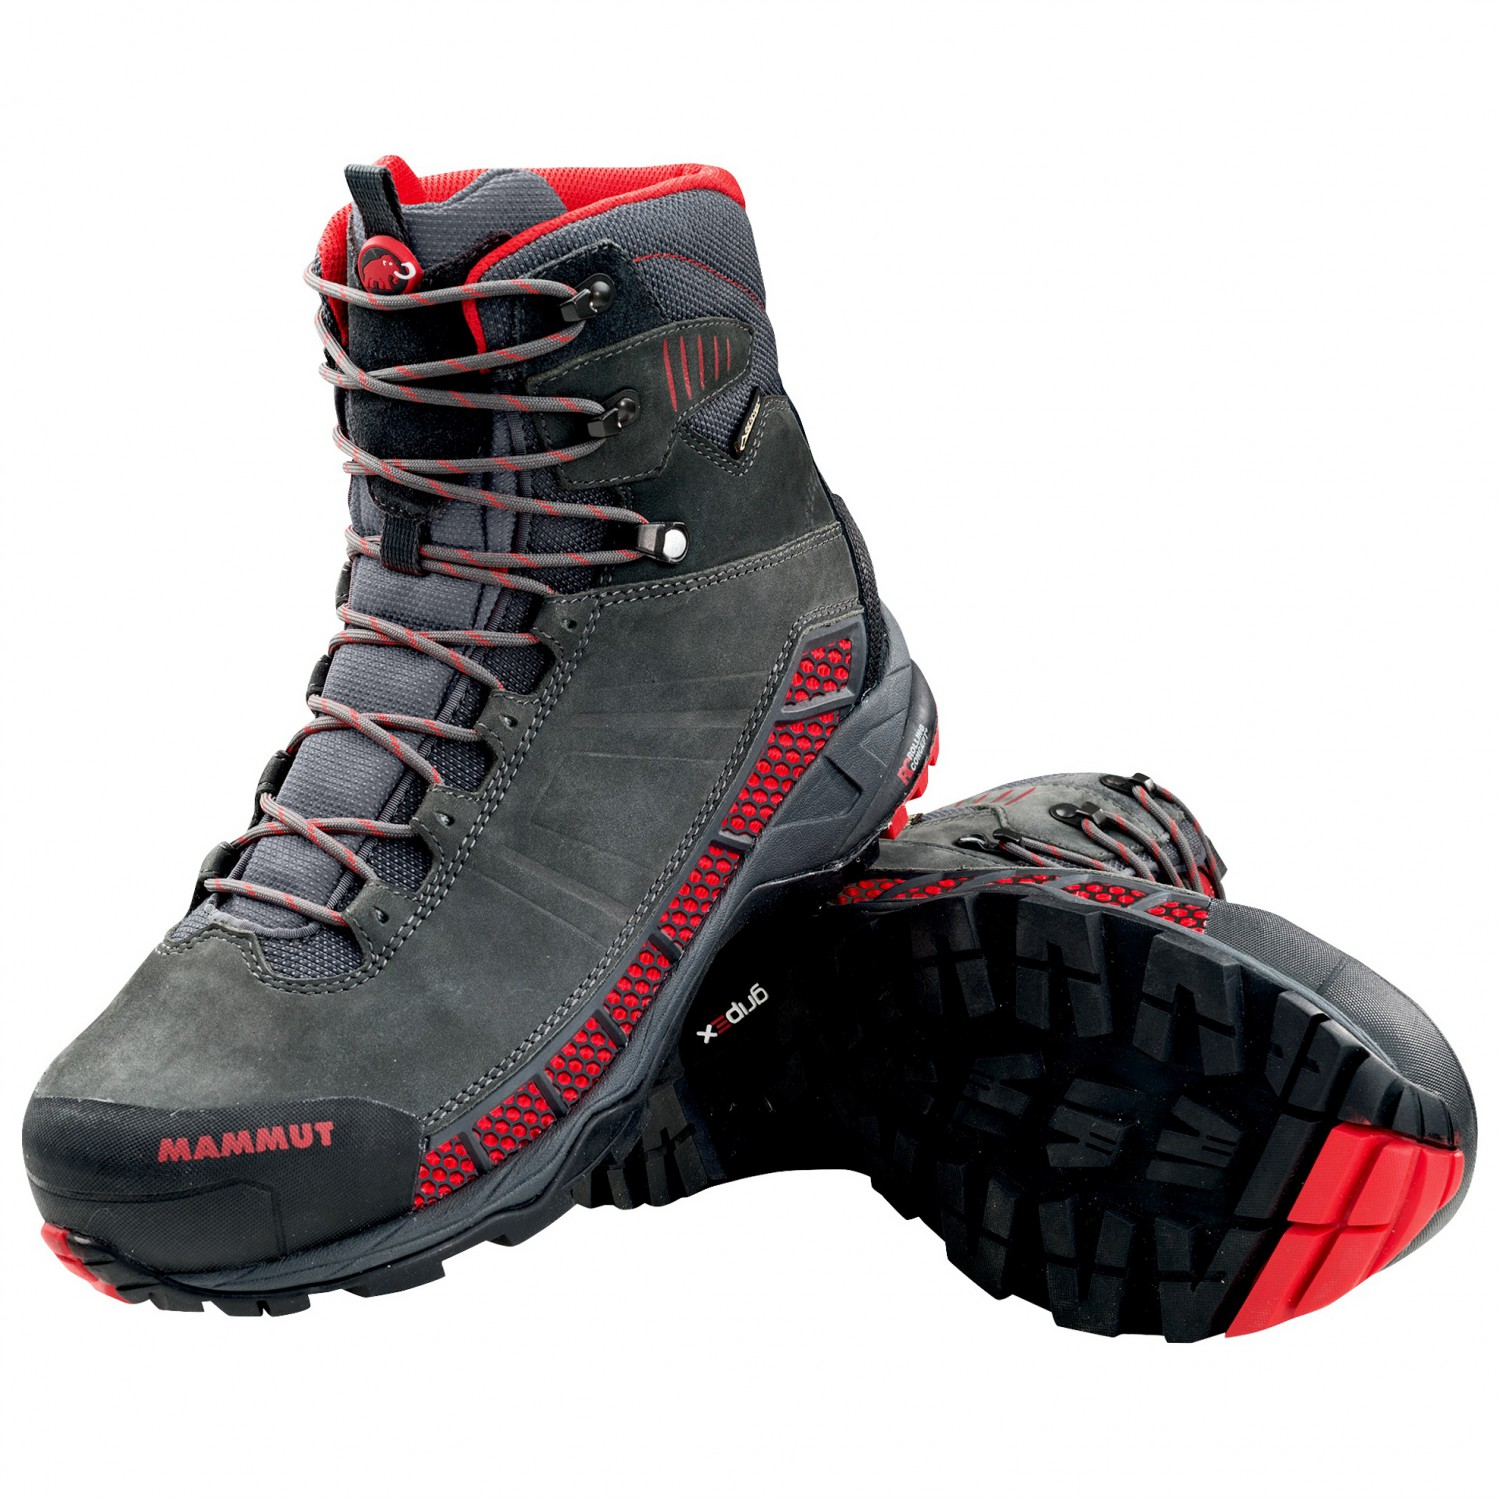 64367b7eb82 Mammut - Comfort Guide High GTX Surround - Walking boots